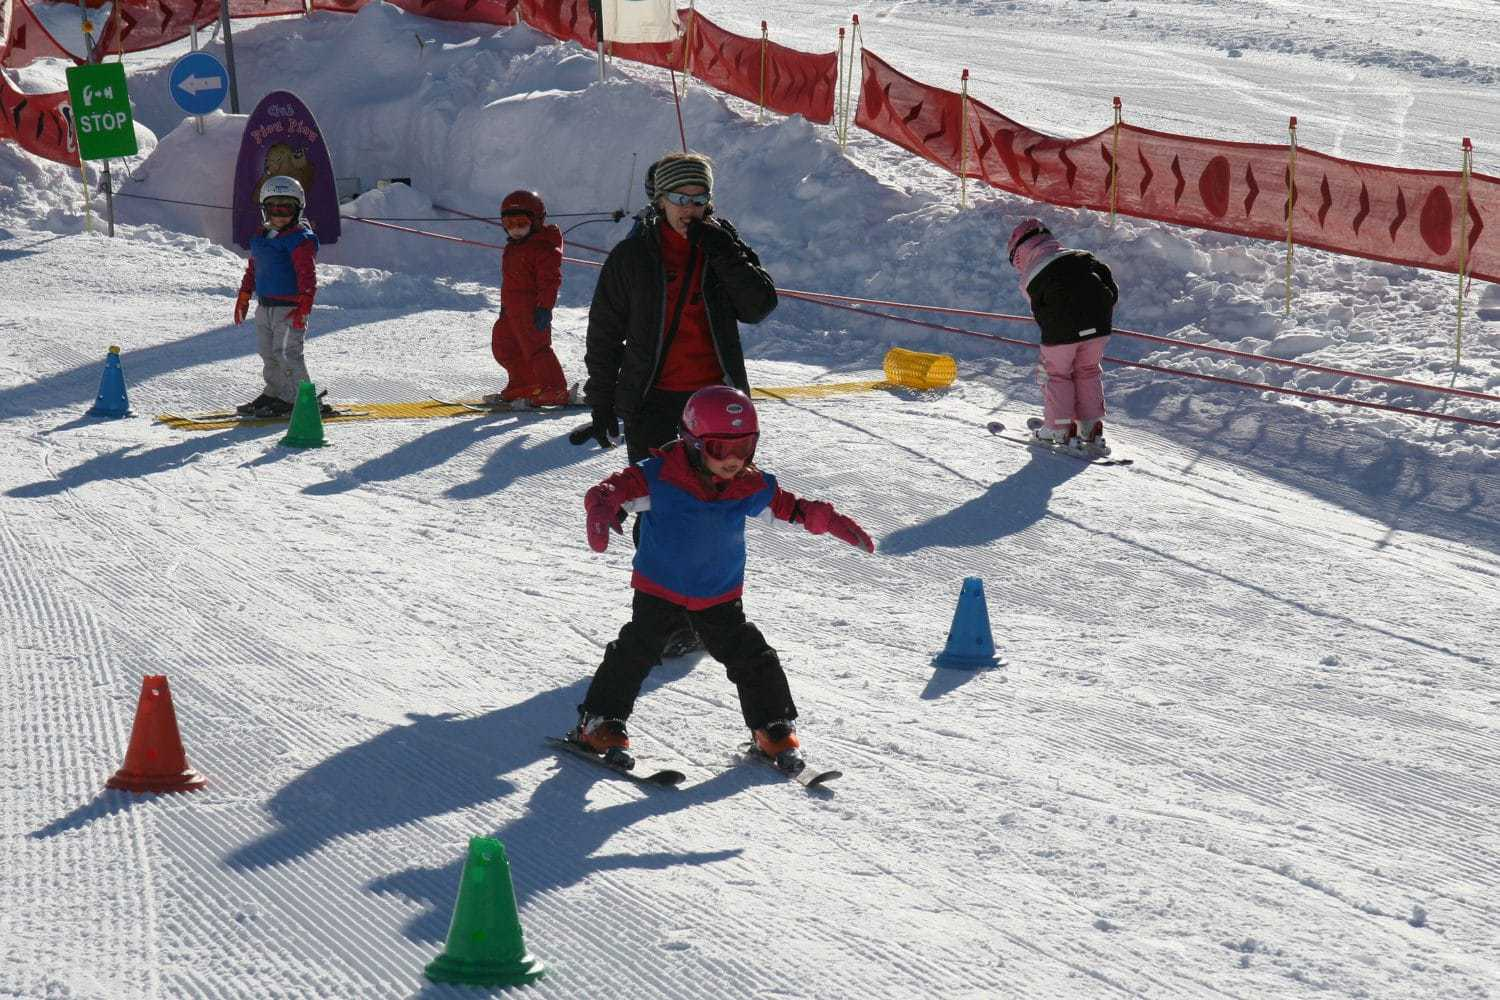 A young child at beginner ESF lessons